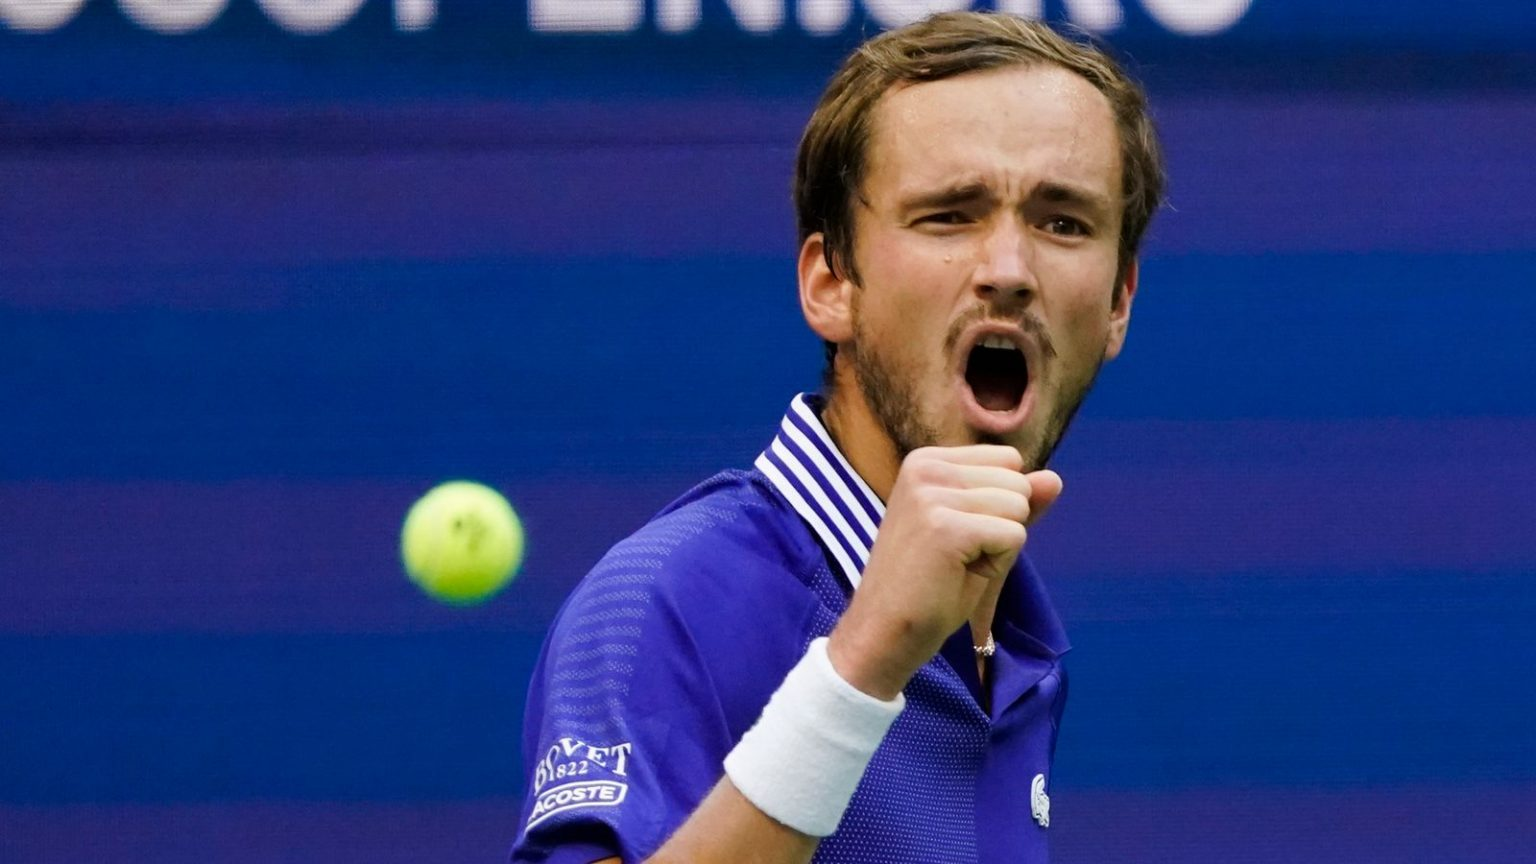 Marvellous Medvedev marches into US Open final - Sugar Radio